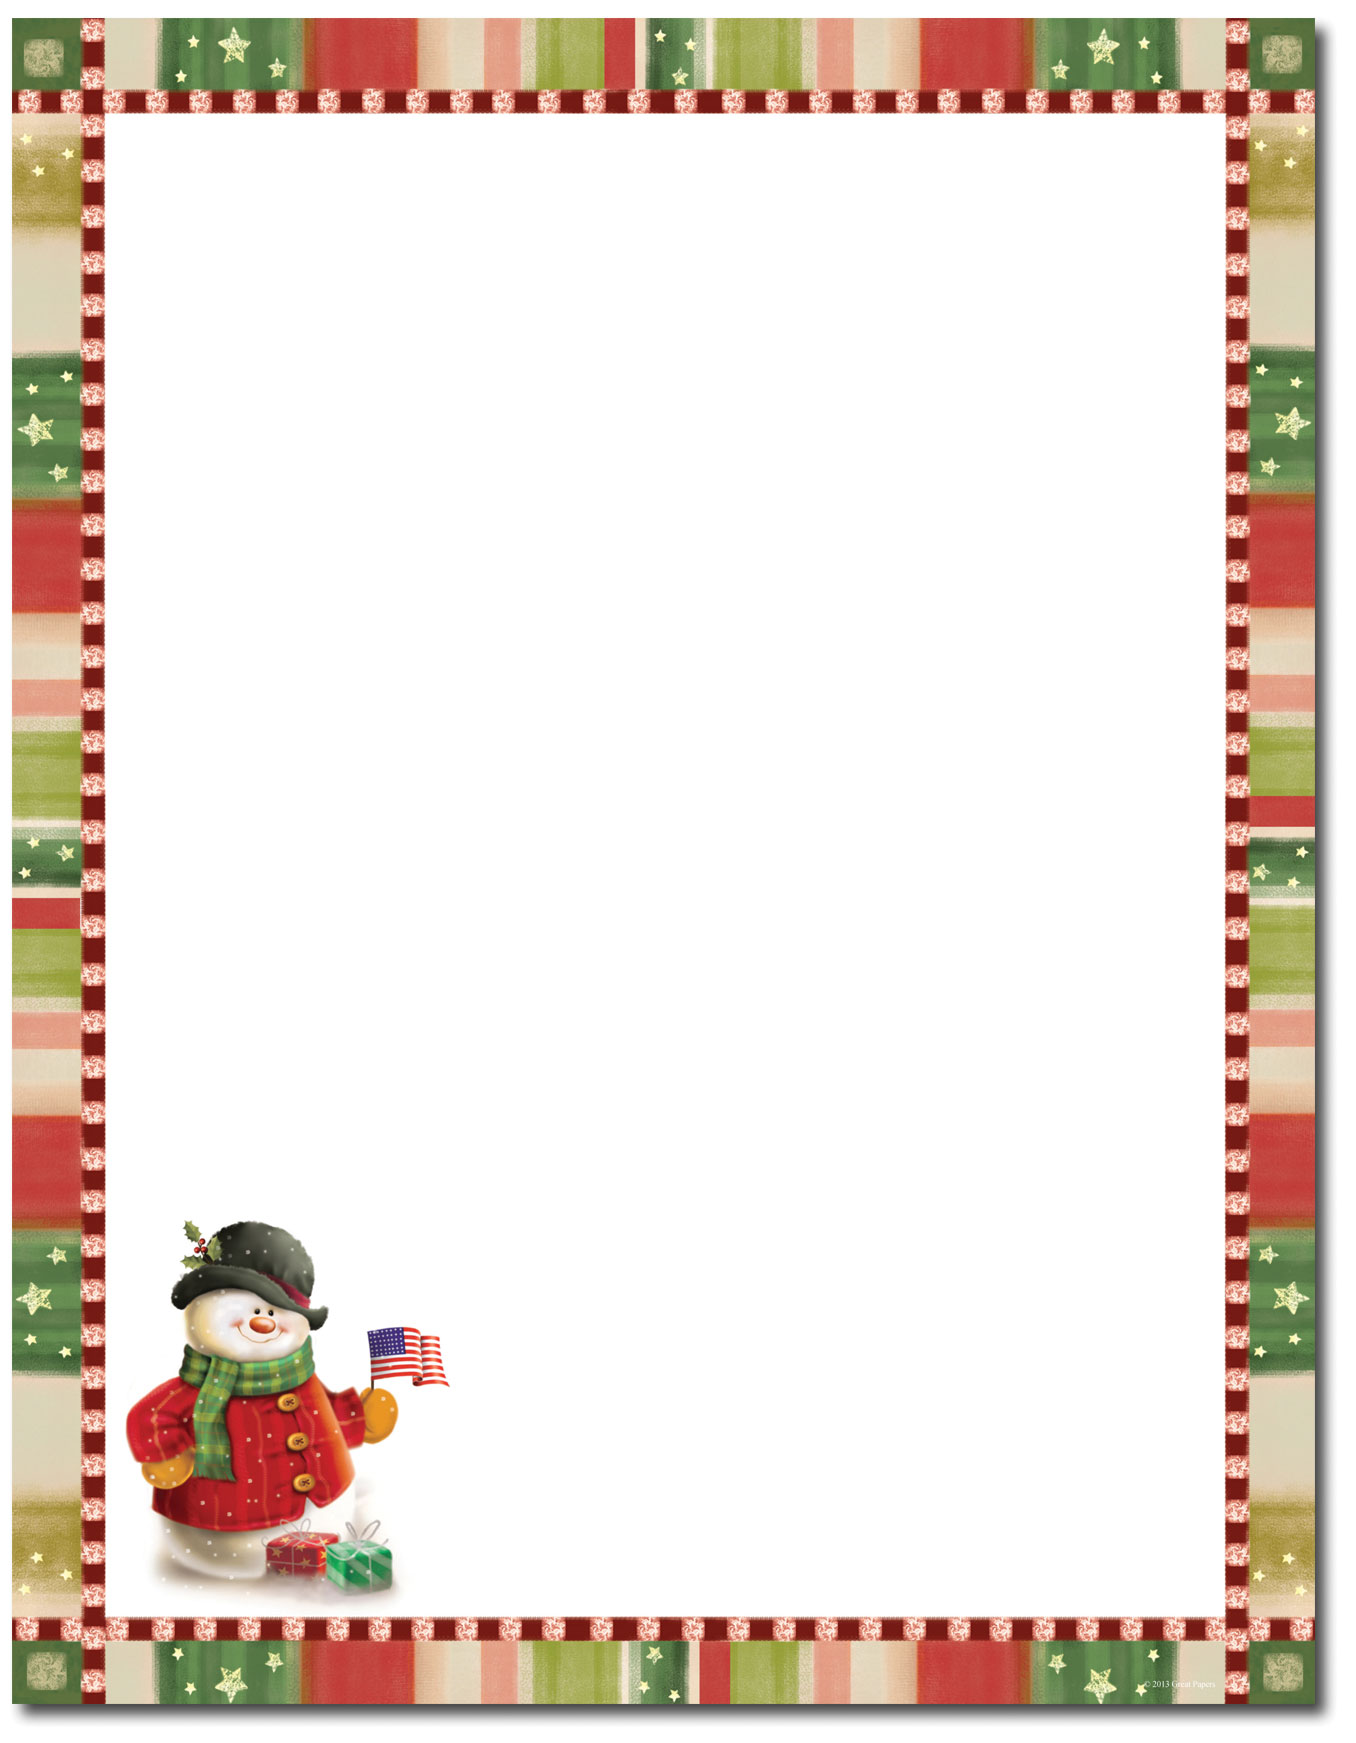 Christmas Snowman Template Printable Templates Auto Qr20 Timing Chain Marks Great Papers